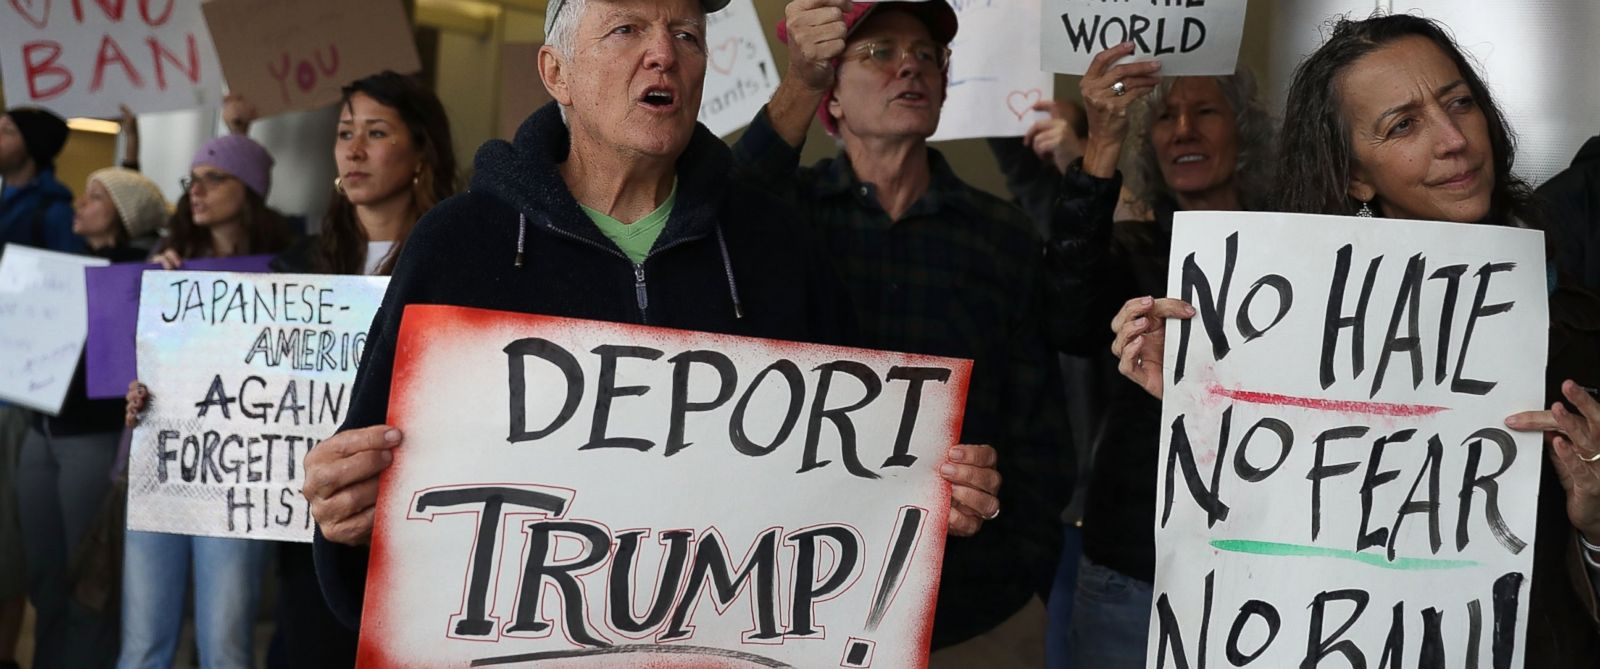 PHOTO: Protesters stand together at the Miami International Airport against the executive order that President Donald Trump signed restricting travelers from seven predominantly Muslim countries, Jan. 29, 2017 in Miami.